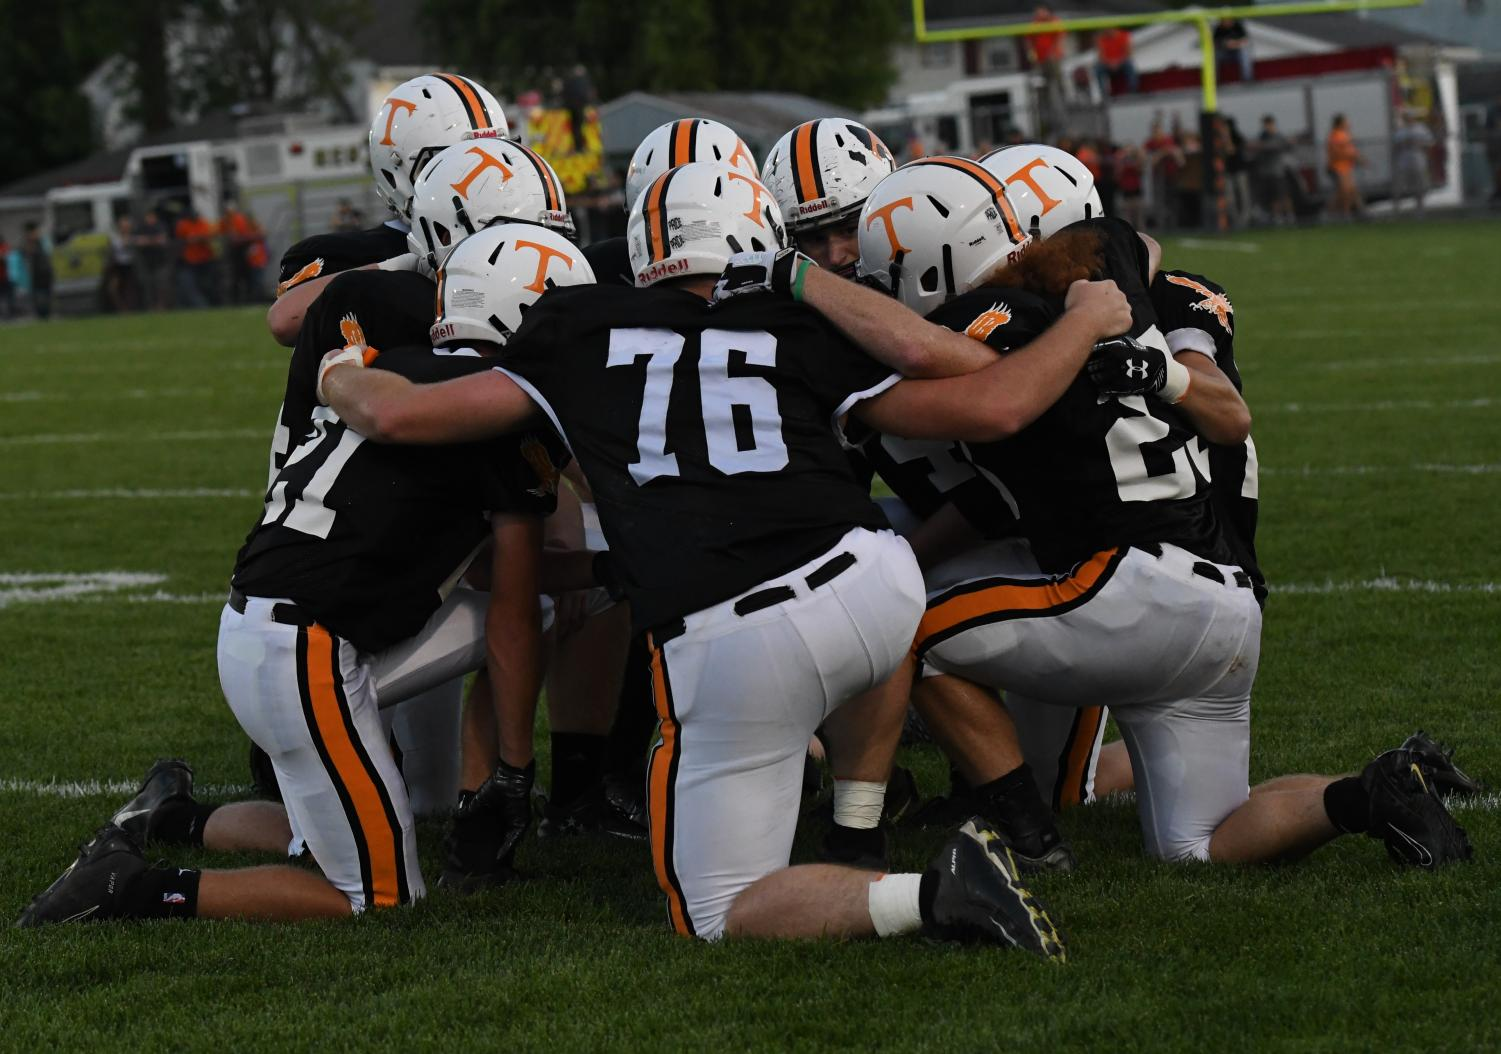 The Team huddled together during the Central game.